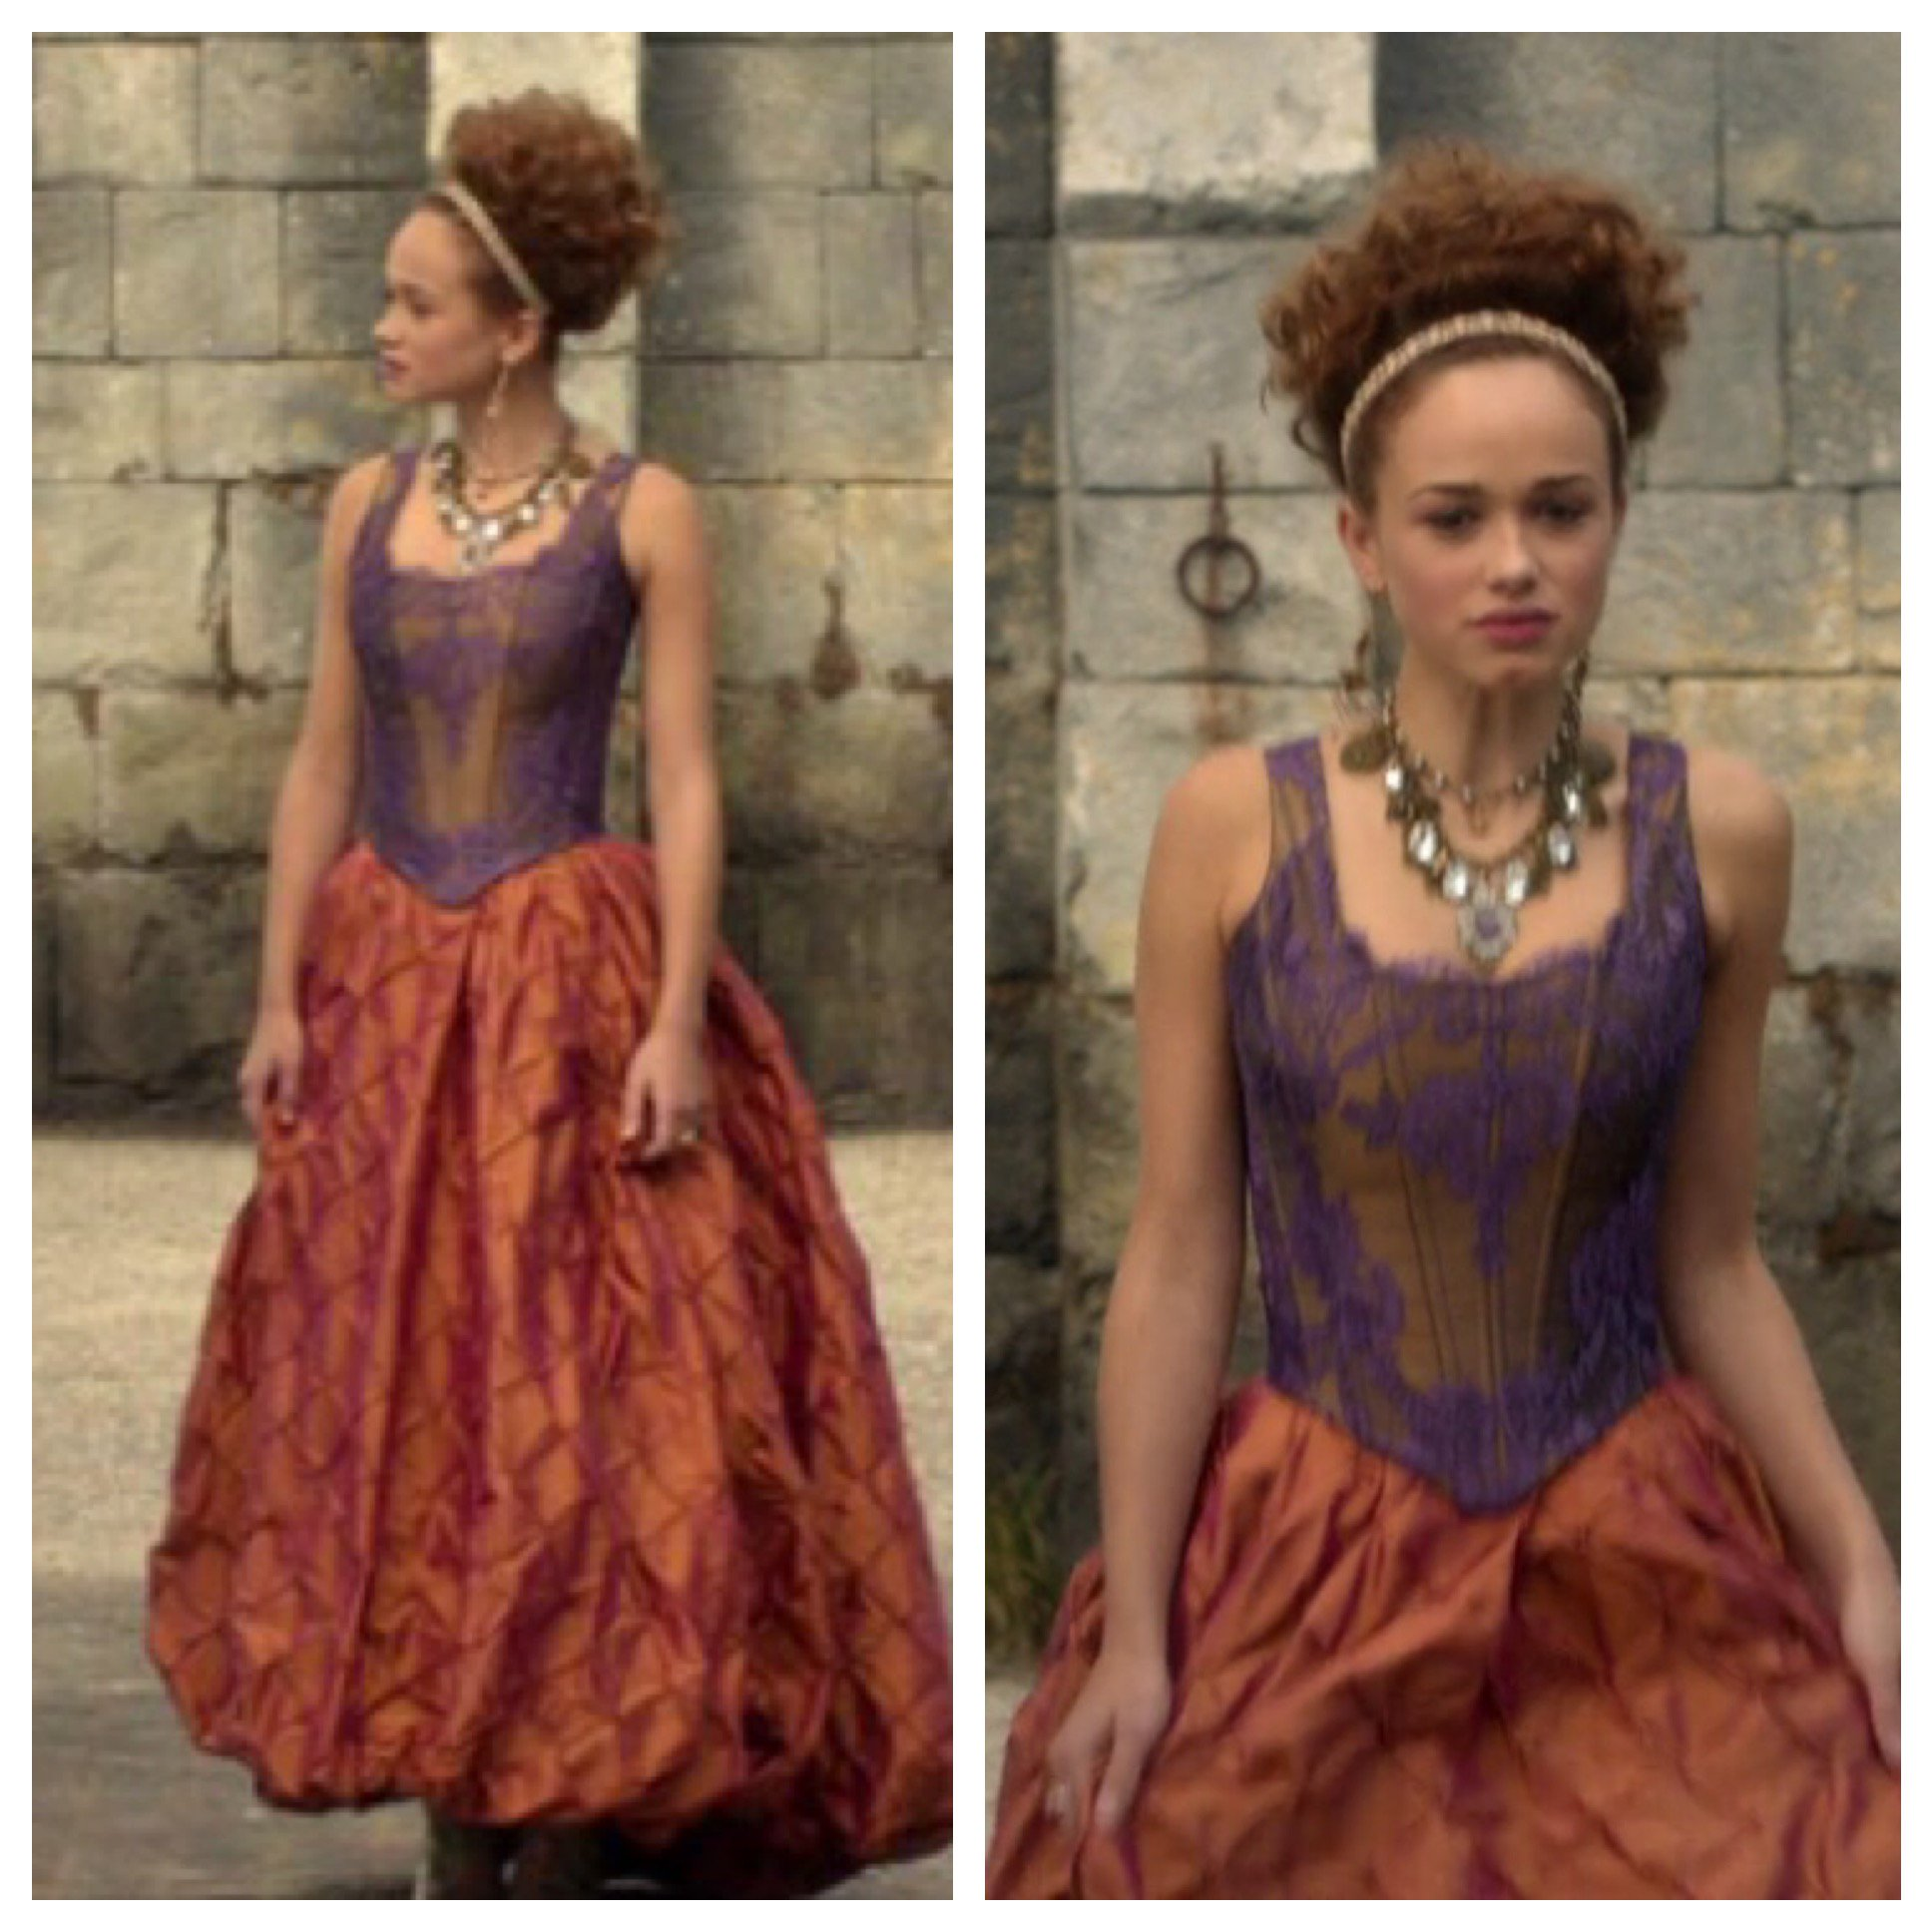 I could totally pull this off as a wedding dress right? #Reignfashion @SqueezyKez https://t.co/qqhliNm3hC